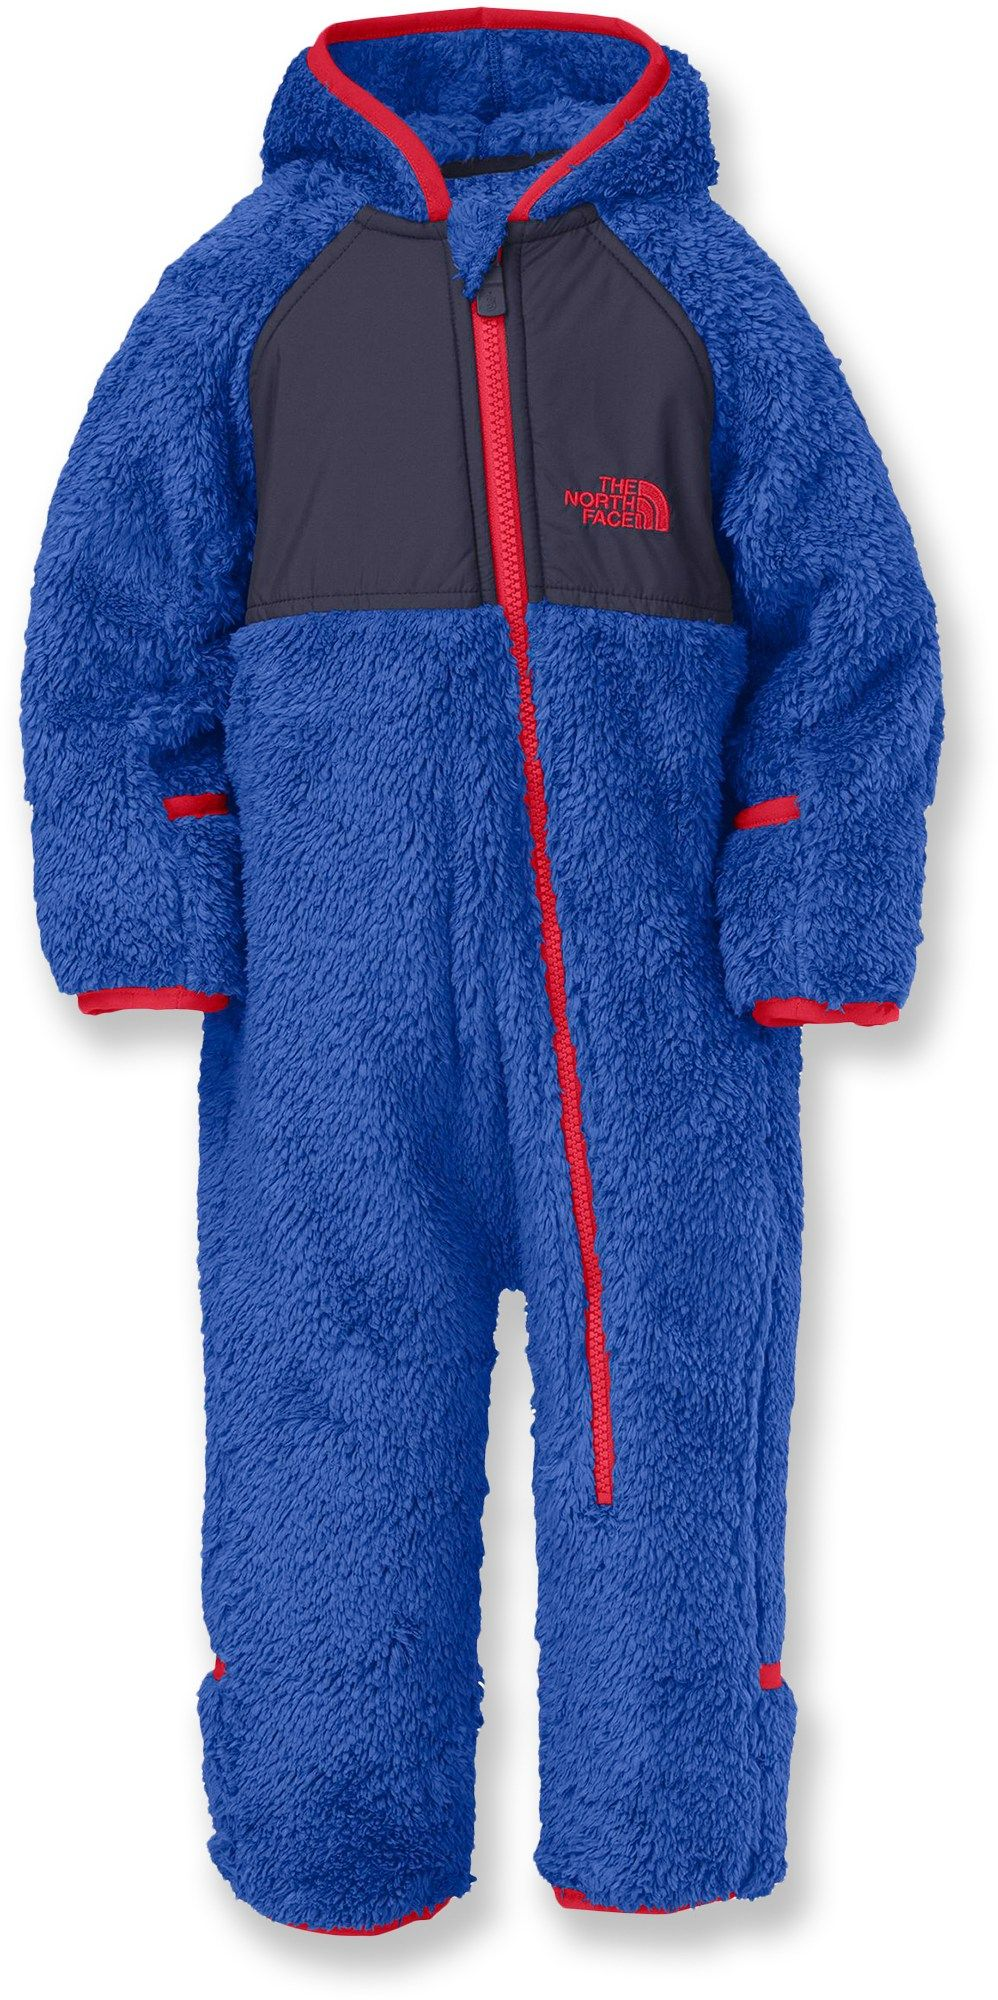 d8b6da16a26 The North Face Plushee Fleece Bunting - Infants  - Free Shipping at  REI.com.  70. blue or beige